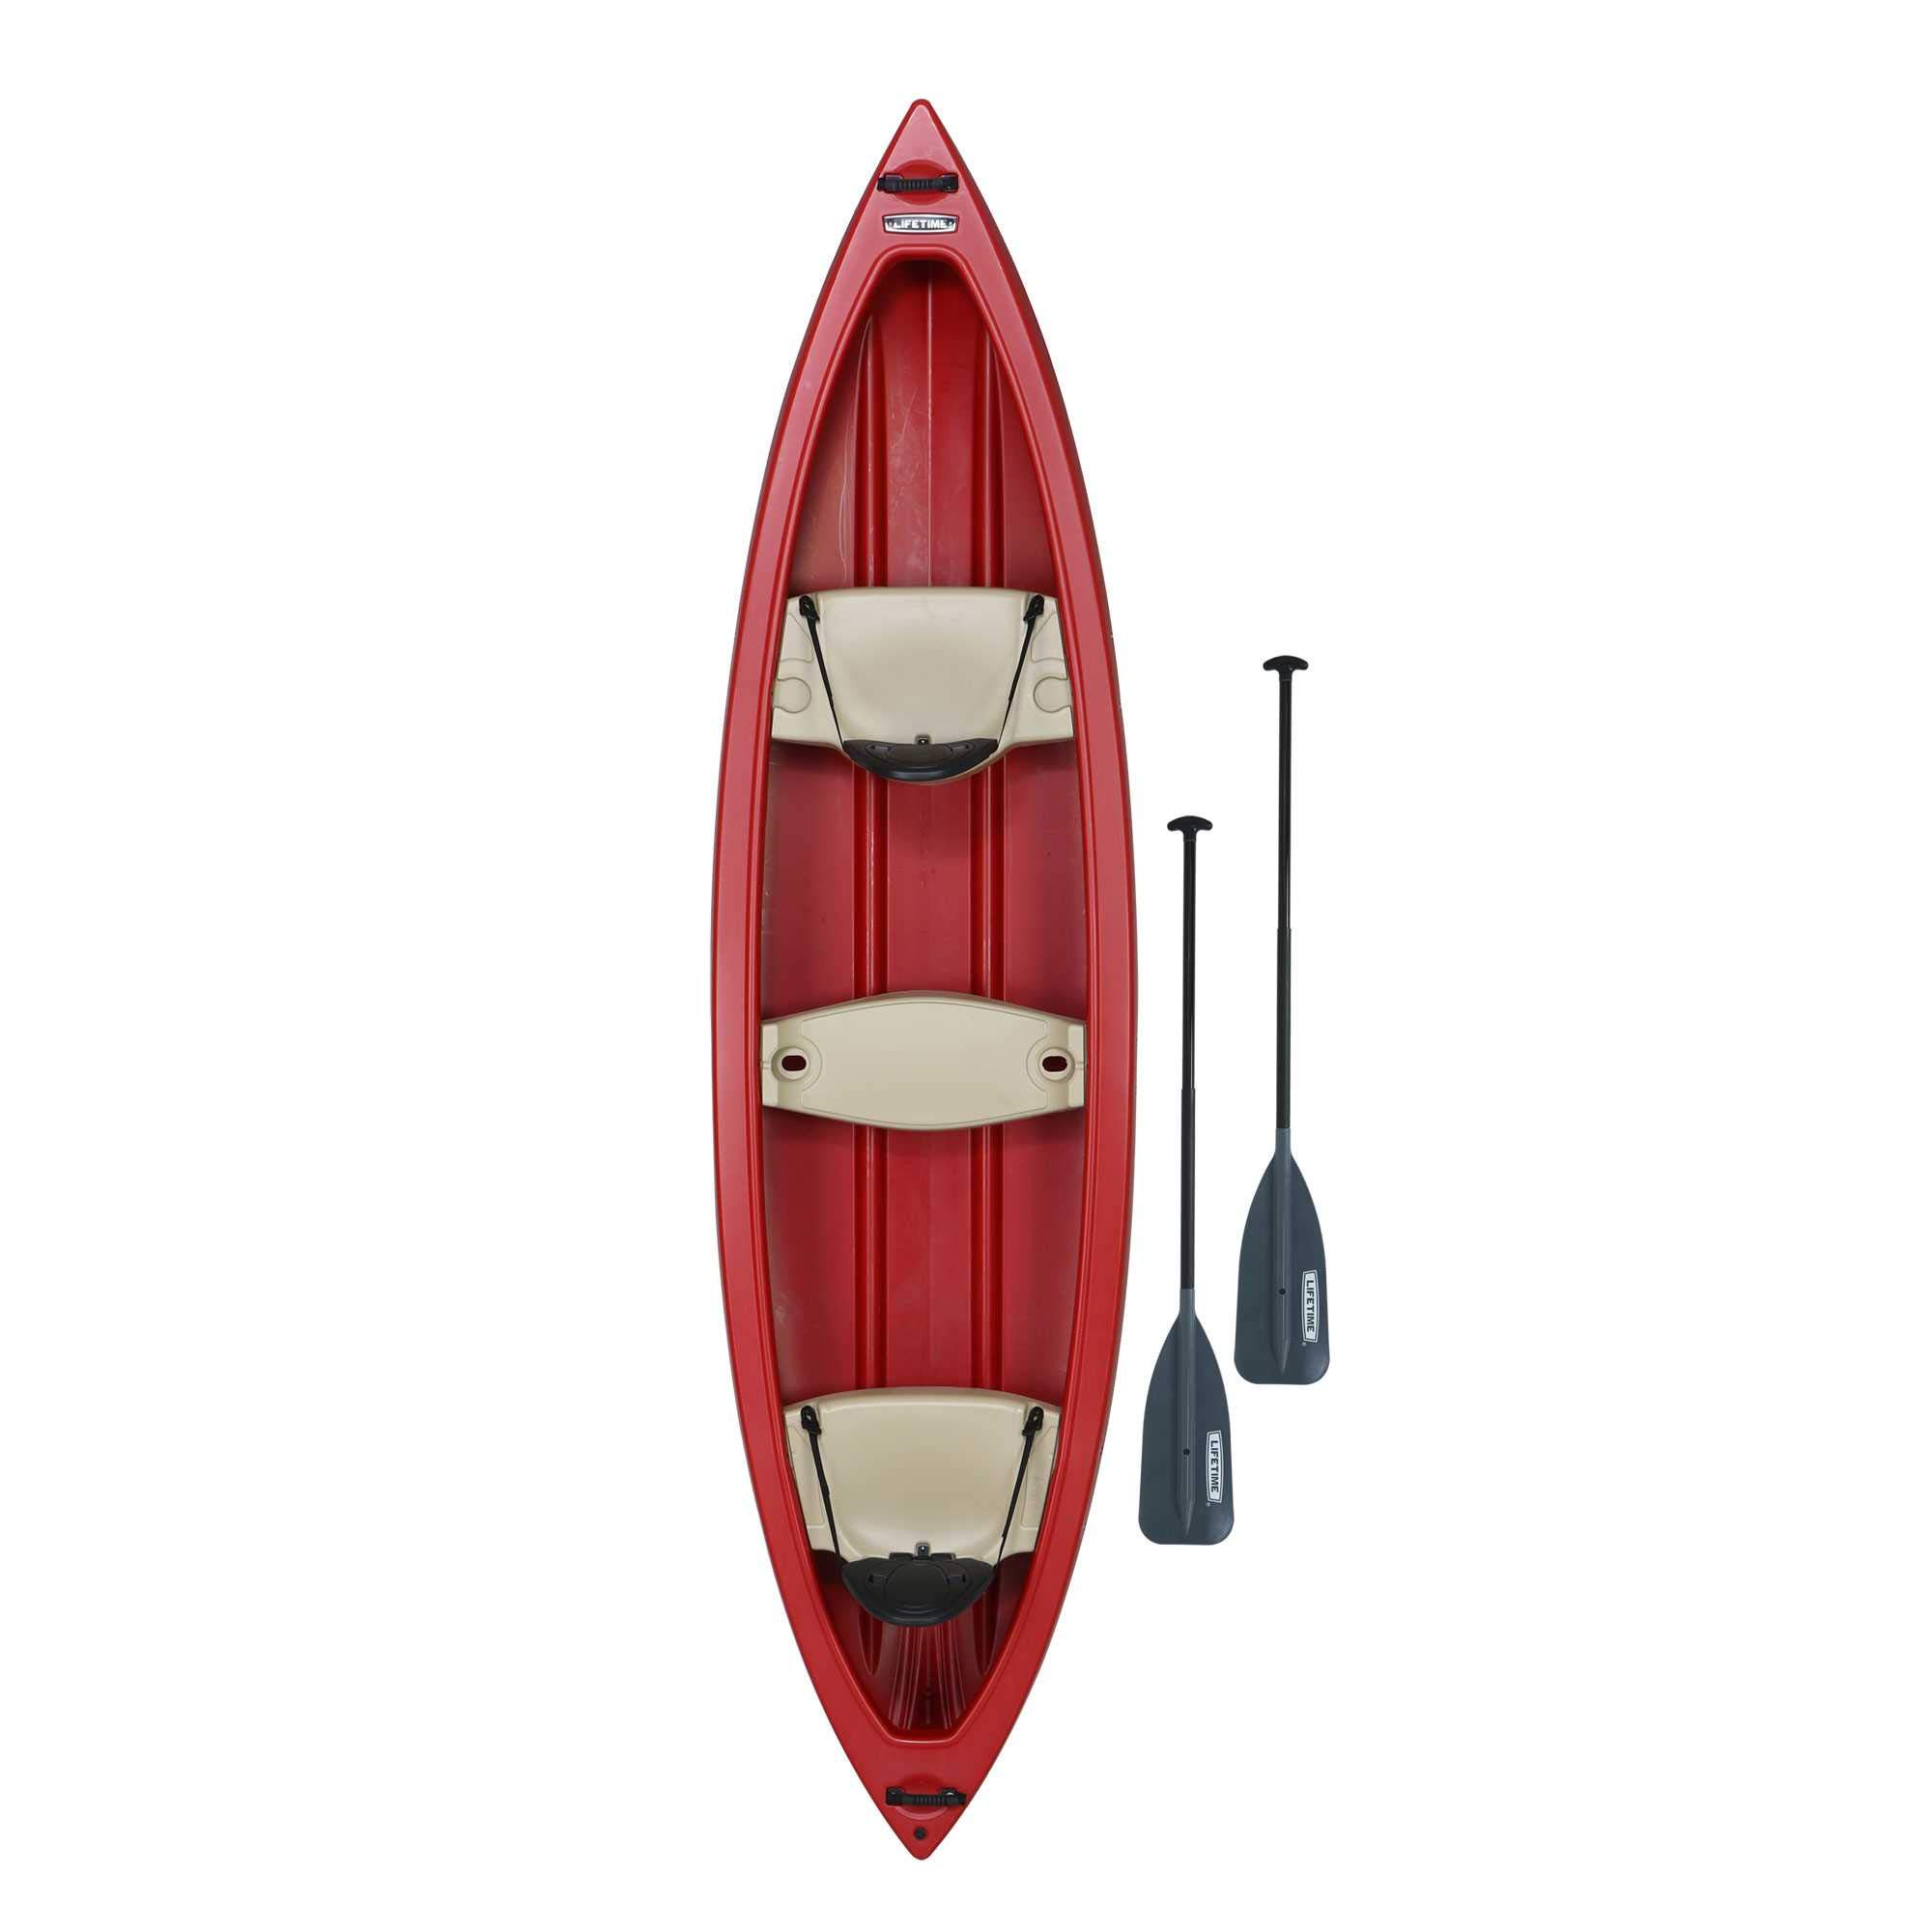 Lifetime Kodiak Canoe with 2 Paddles, Red, 13' by Lifetime